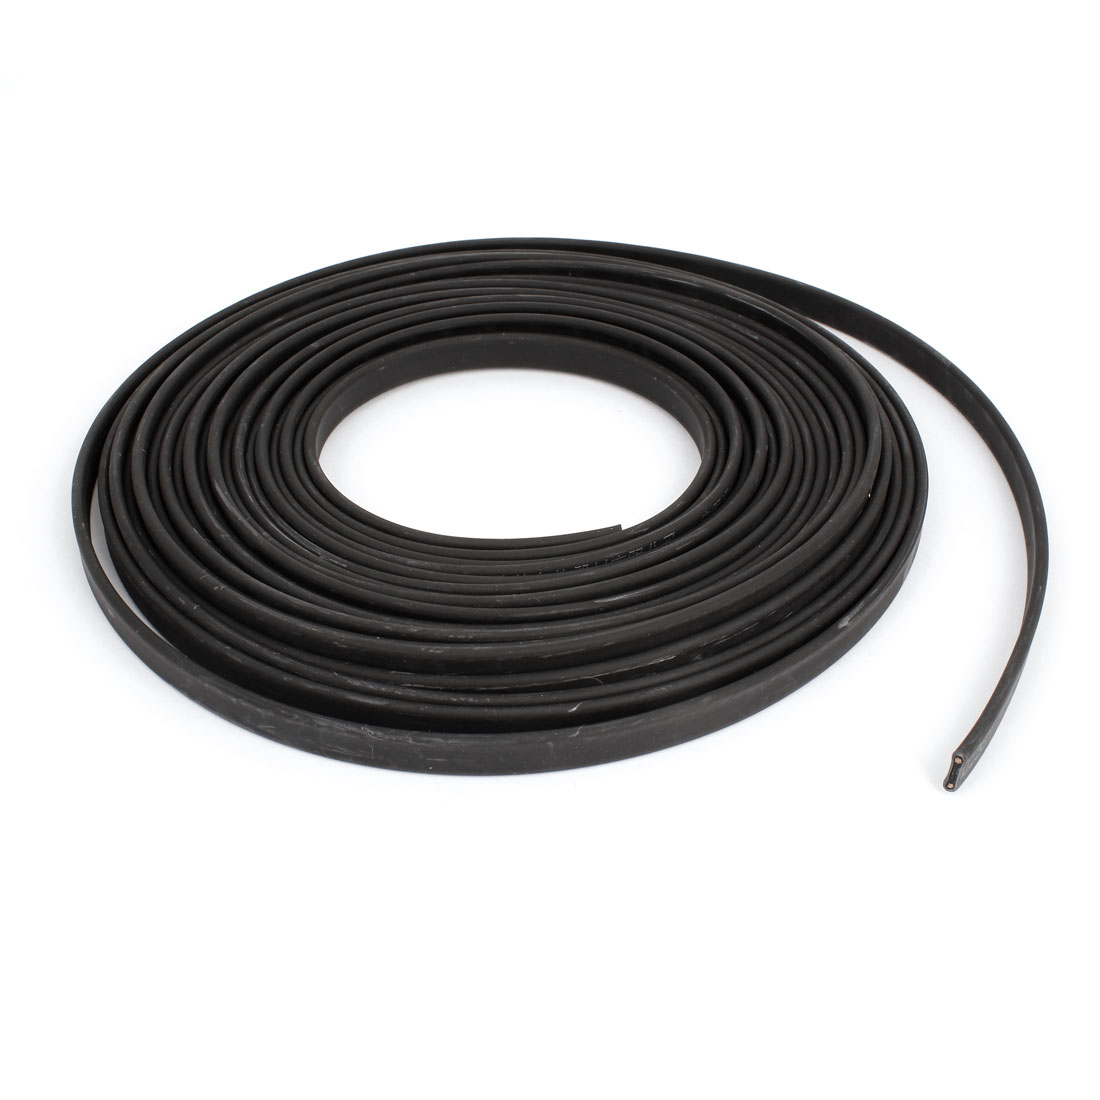 Black Inflaming Retardant Waterproof Heating Cable 36V 10M x 11mm